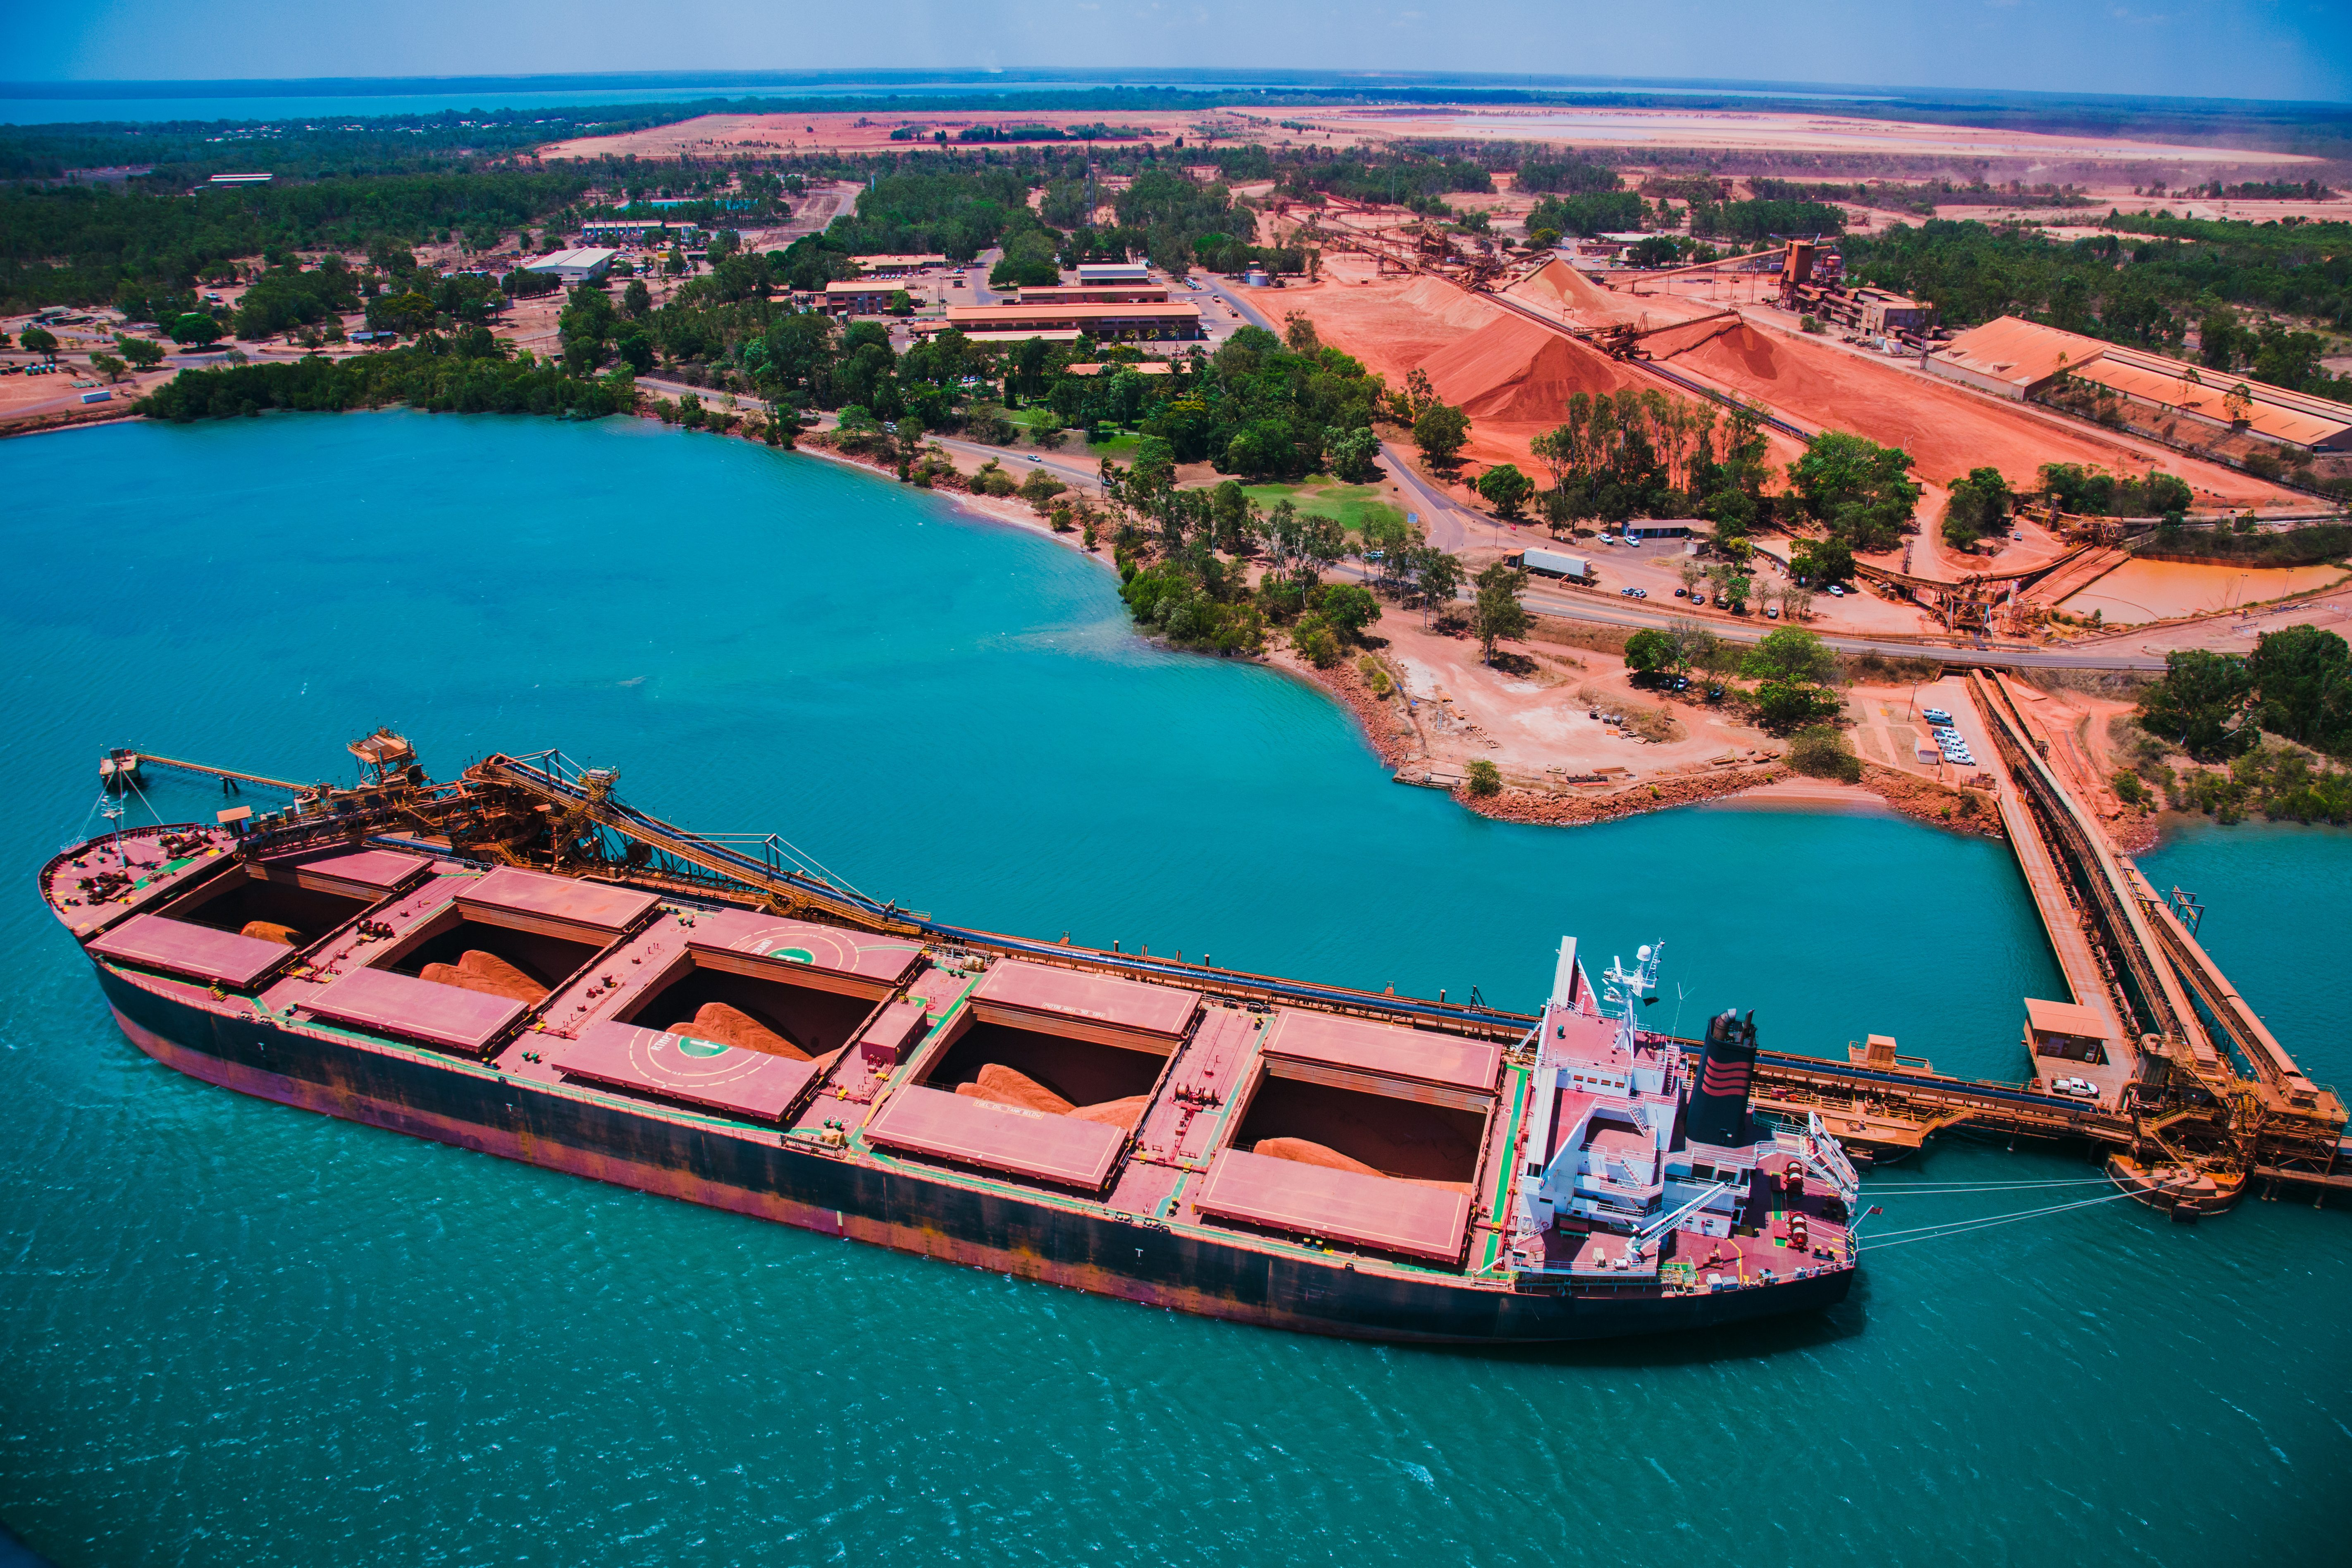 S. Ship being loaded at Rio Tinto Weipa operations with bauxite stockpiles in the background